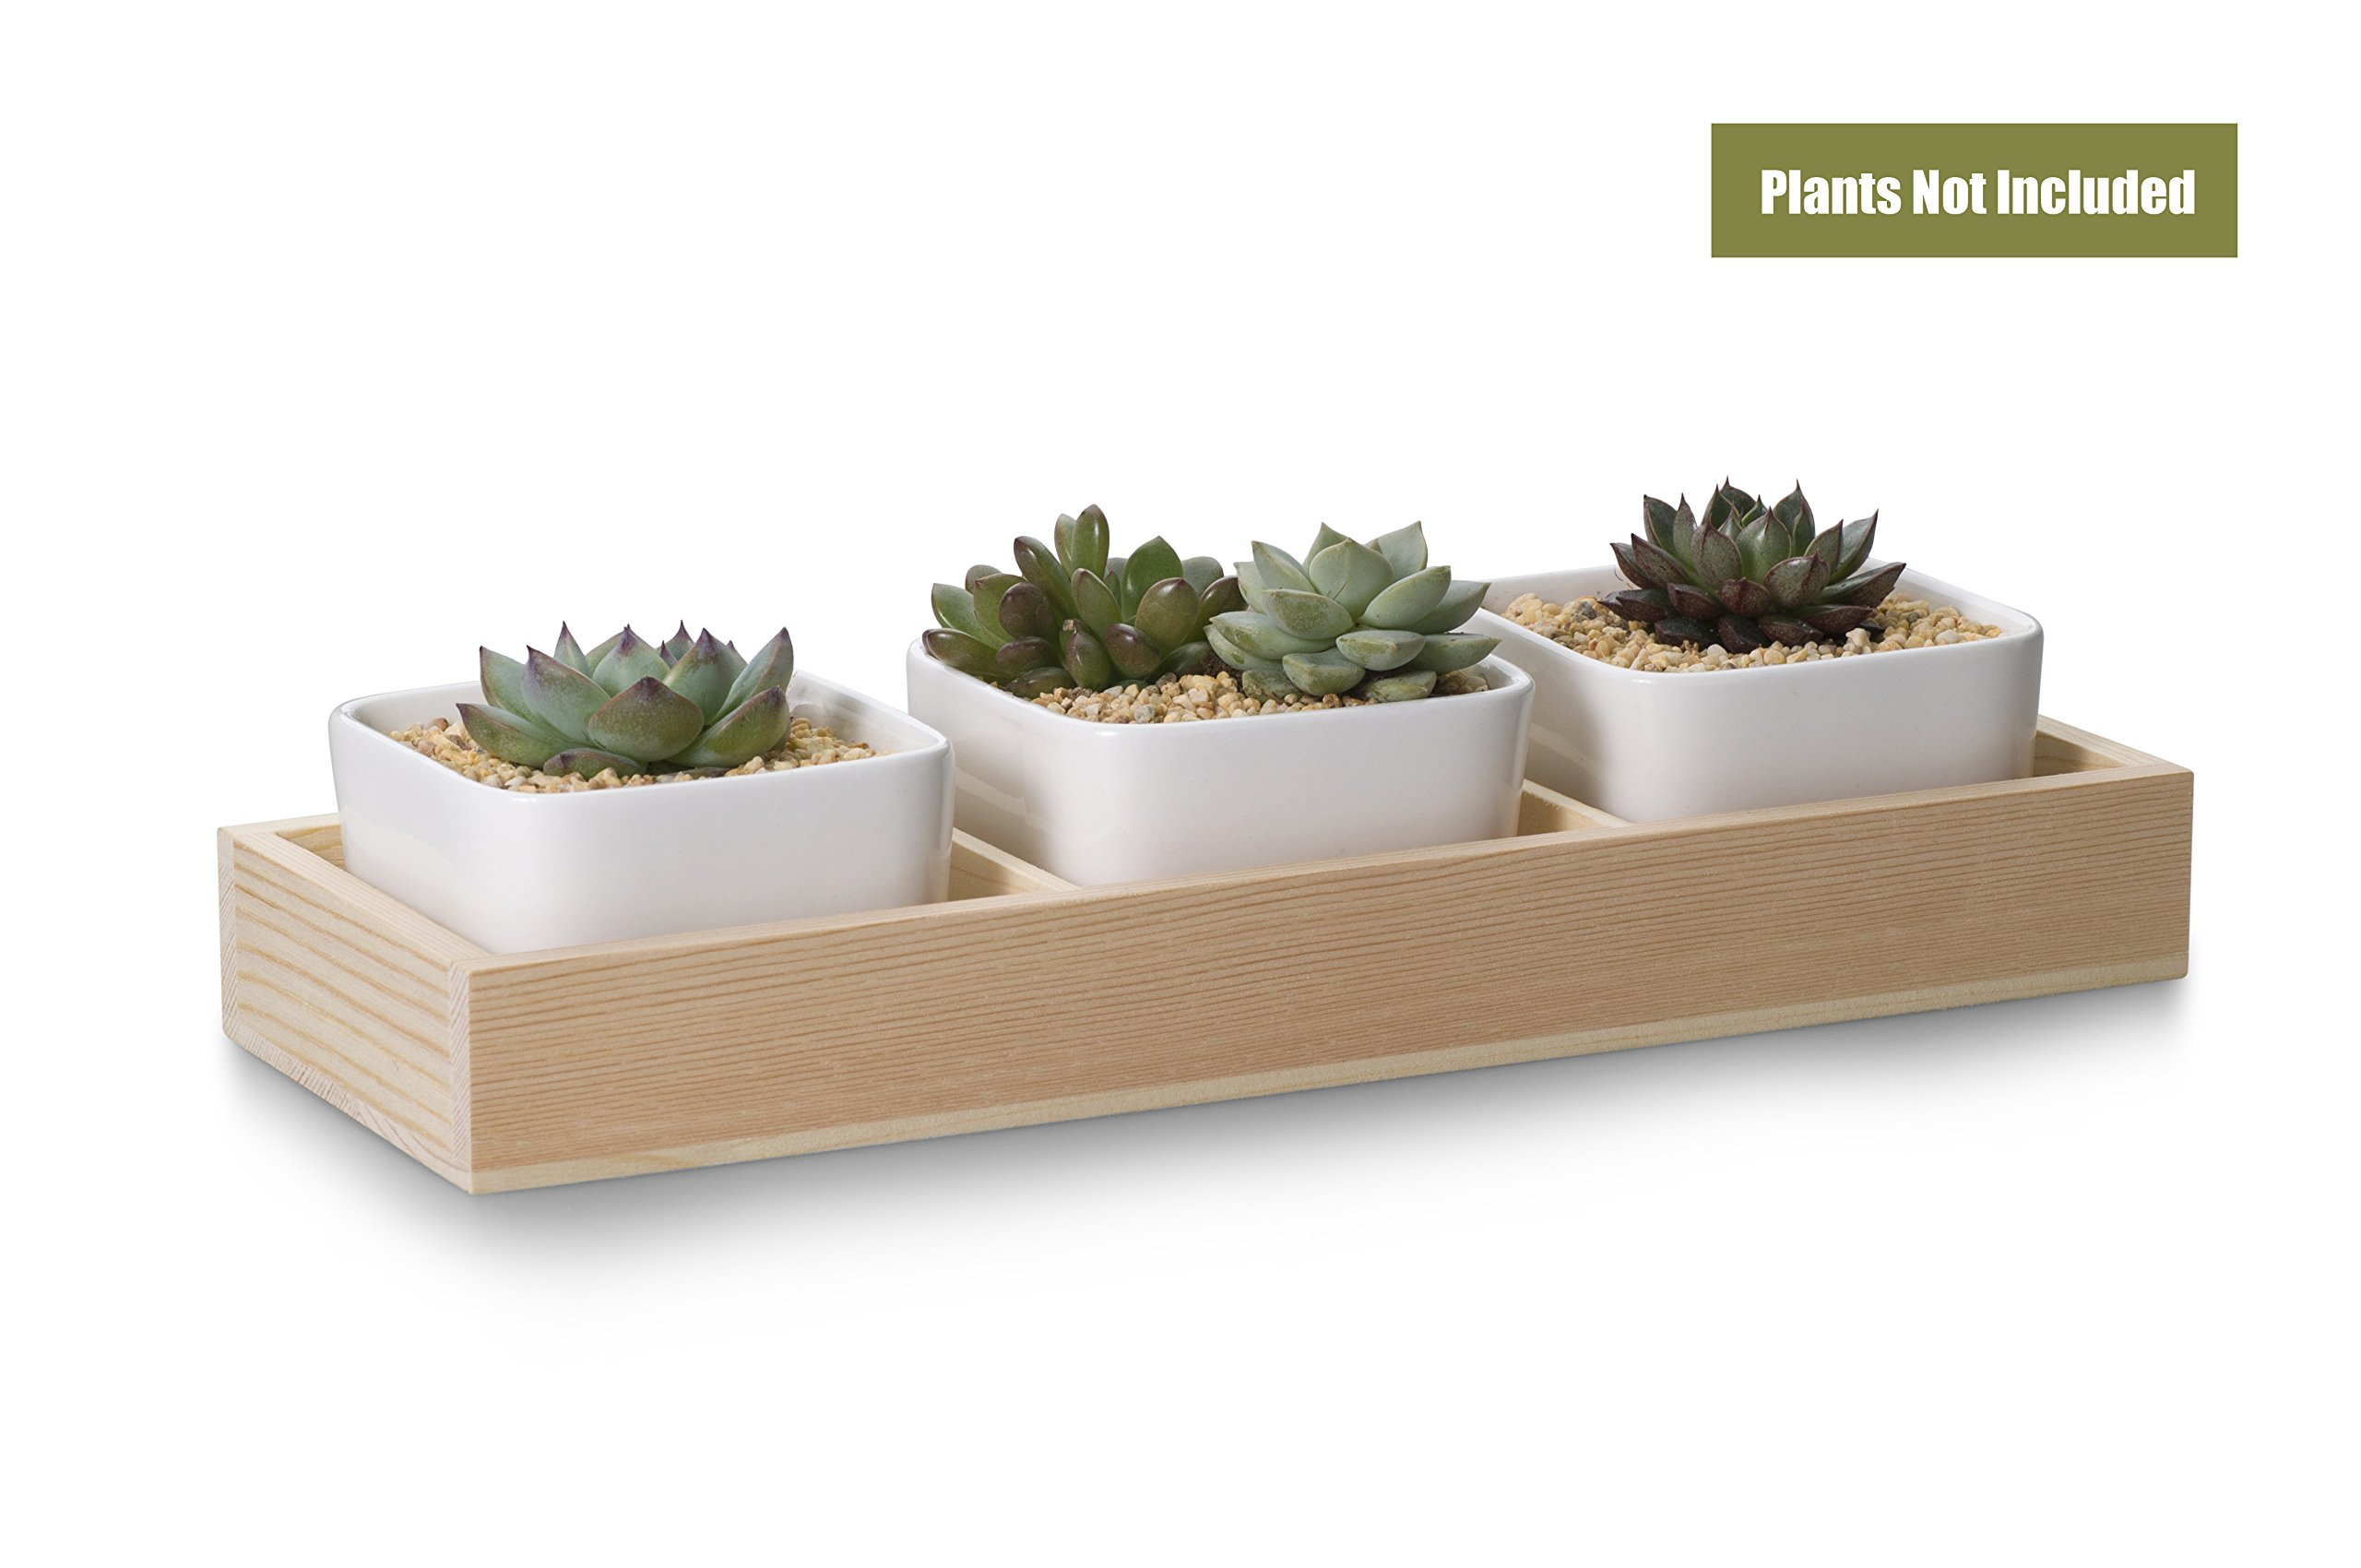 Opps 3 Pcs 3.54 Inch White Ceramic Square Succulent/Cactus Plant Pot with Decorative Window Wooden Plant Container Box Tray